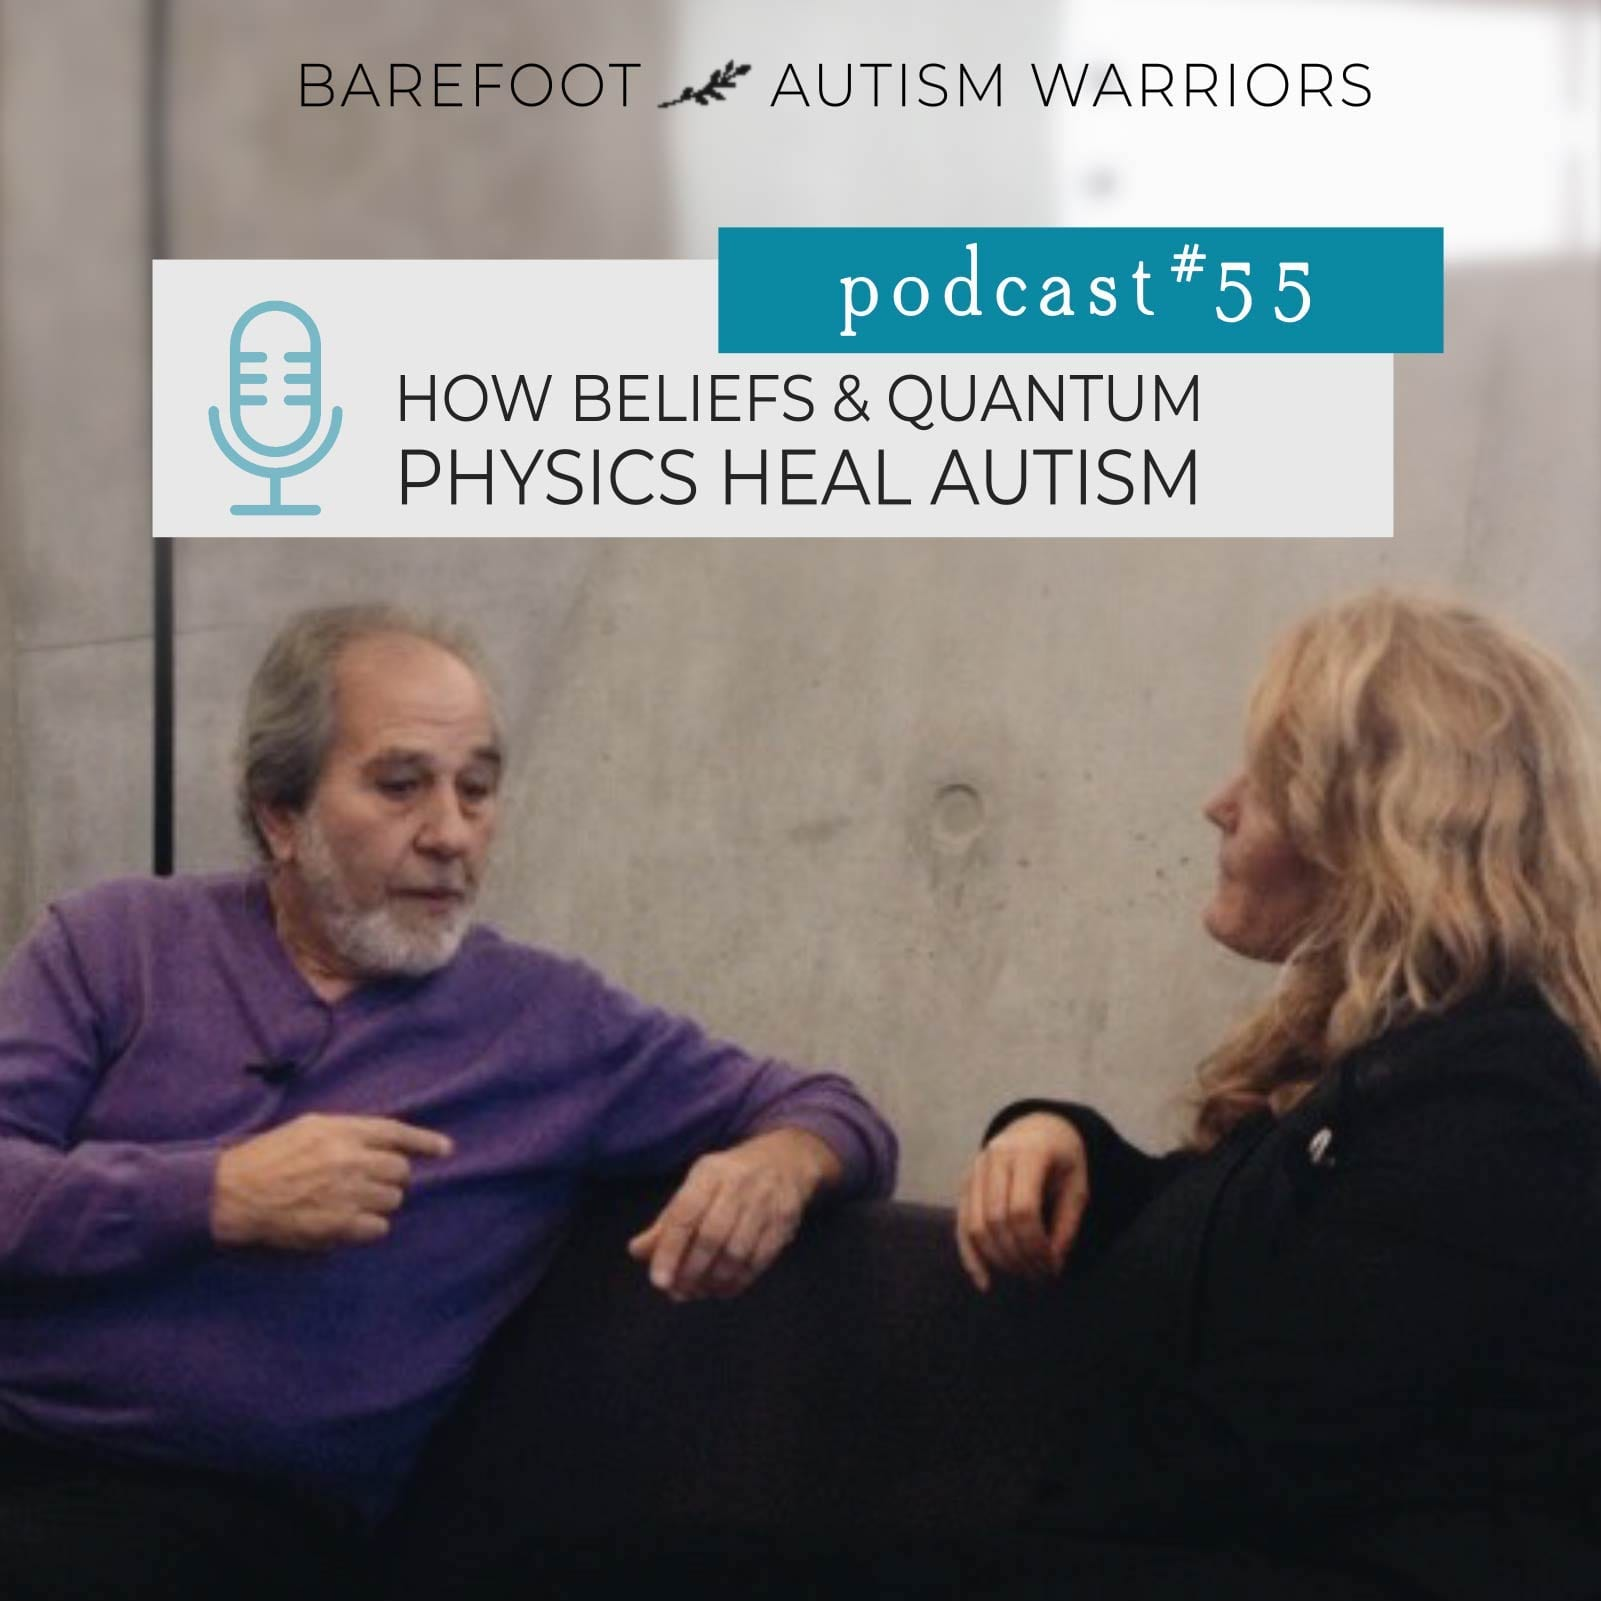 HOW BELIEFS AND QUANTUM PHYSICS TURN AUTISM AROUND